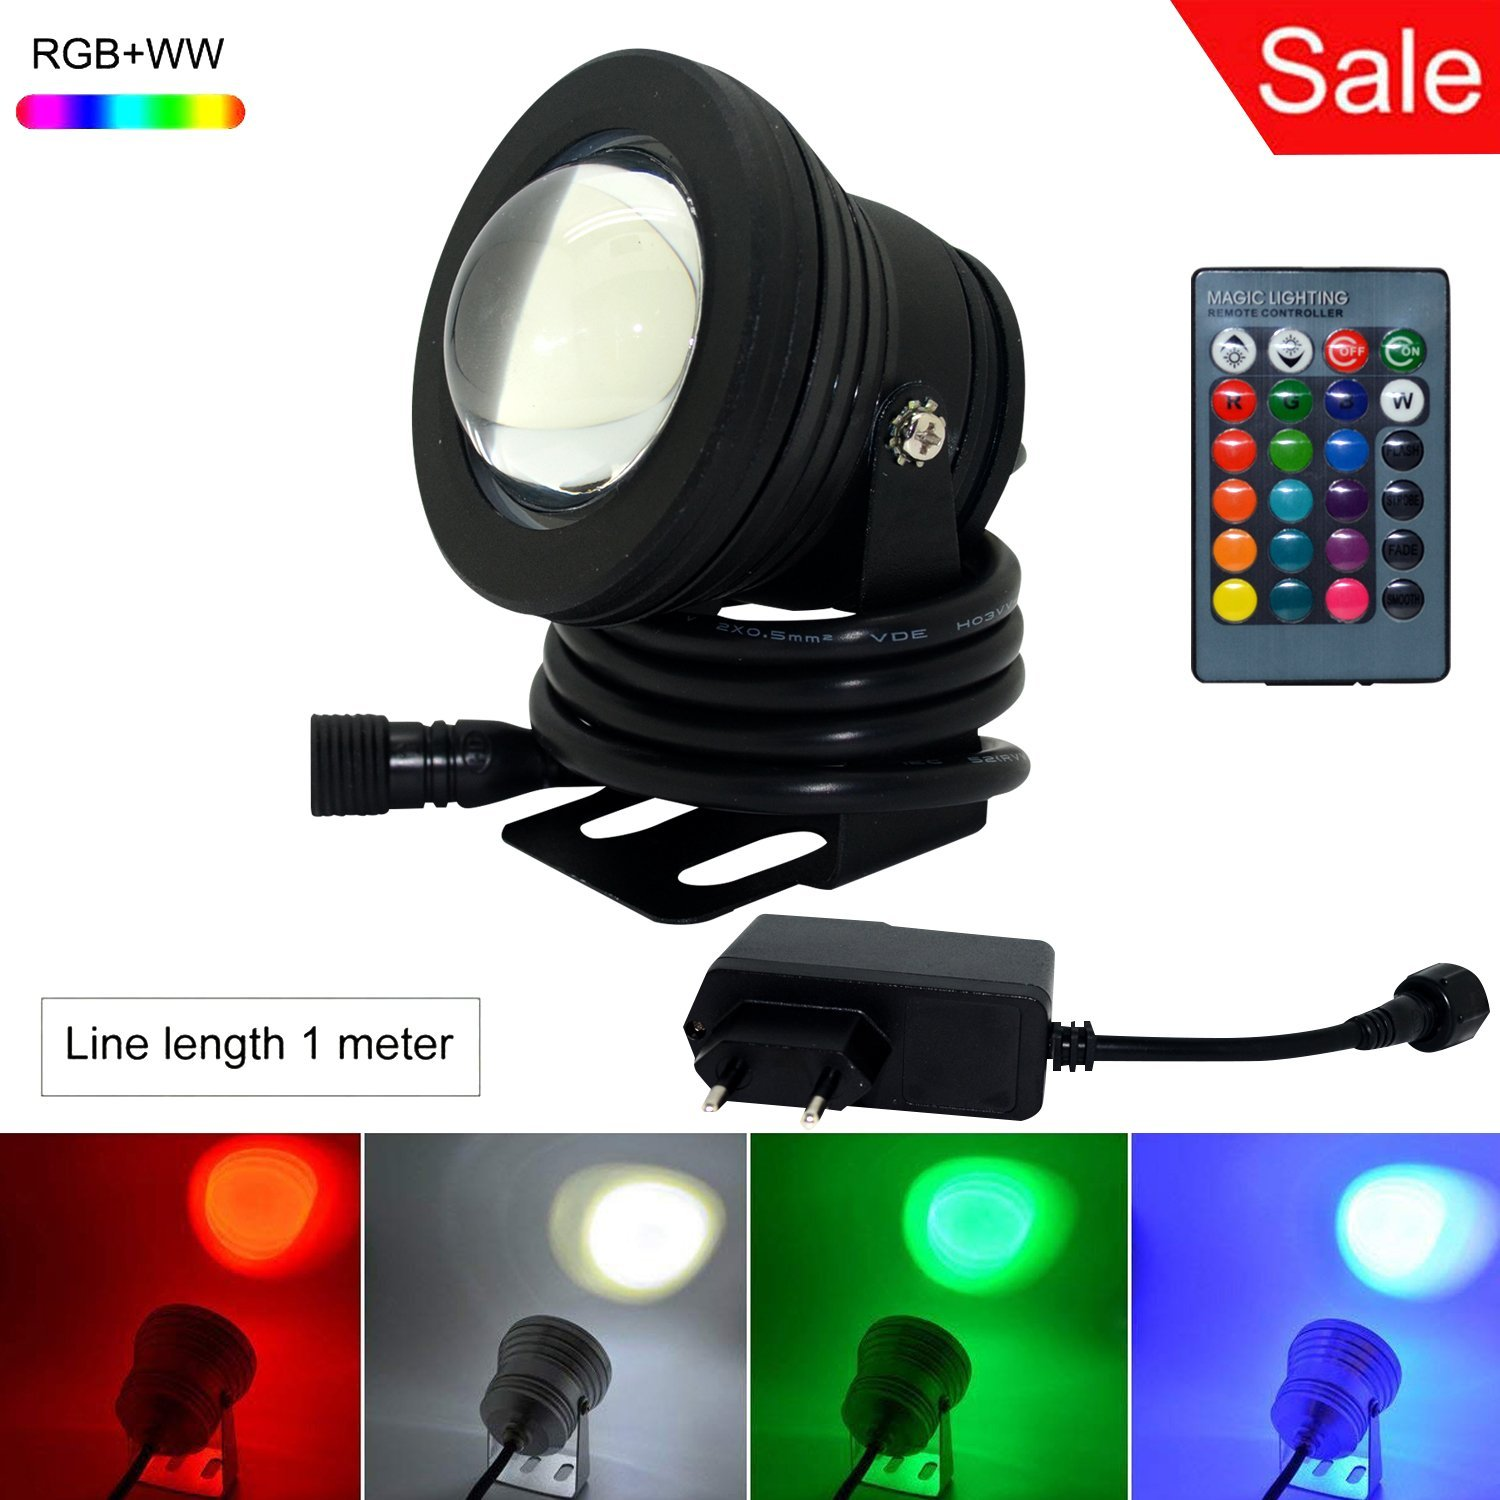 S NMT LED Underwater Flood Light 10W IP68 AC to DC 12V Power Adapter US Plug Waterproof RGBWW Multi-color Changing Landscape Fountain Lamp (Black,1M Cable with US Plug)